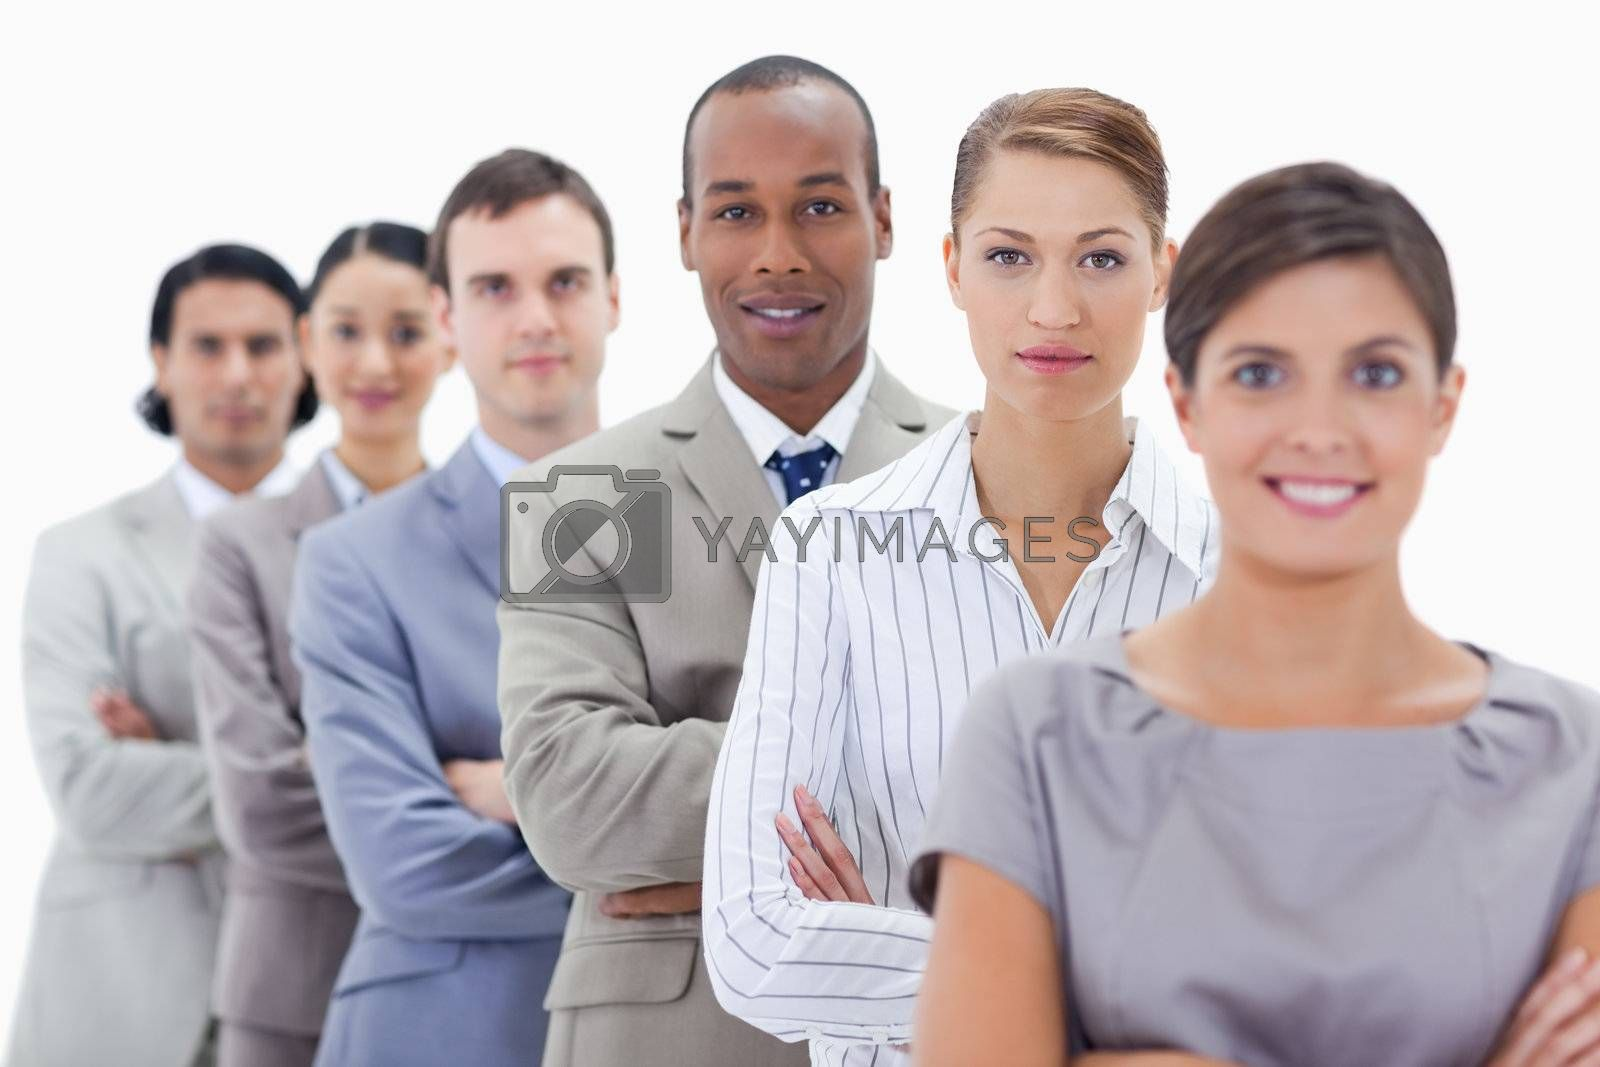 Big close-up of a business team in a single line crossing their arms with focus on the first man